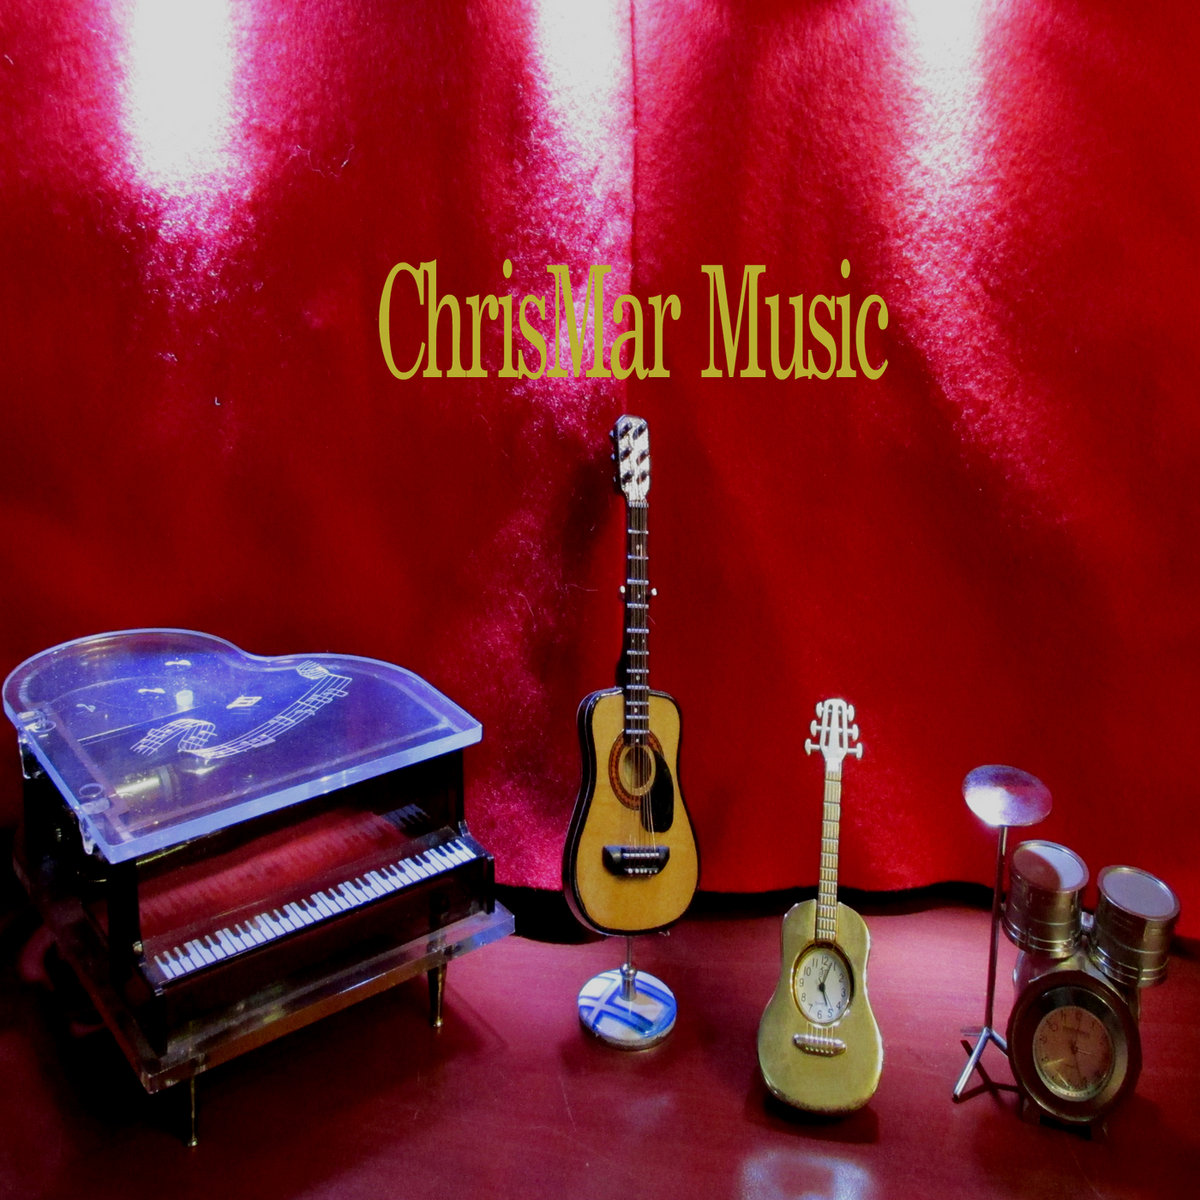 Home Free 1 by ChrisMar Music